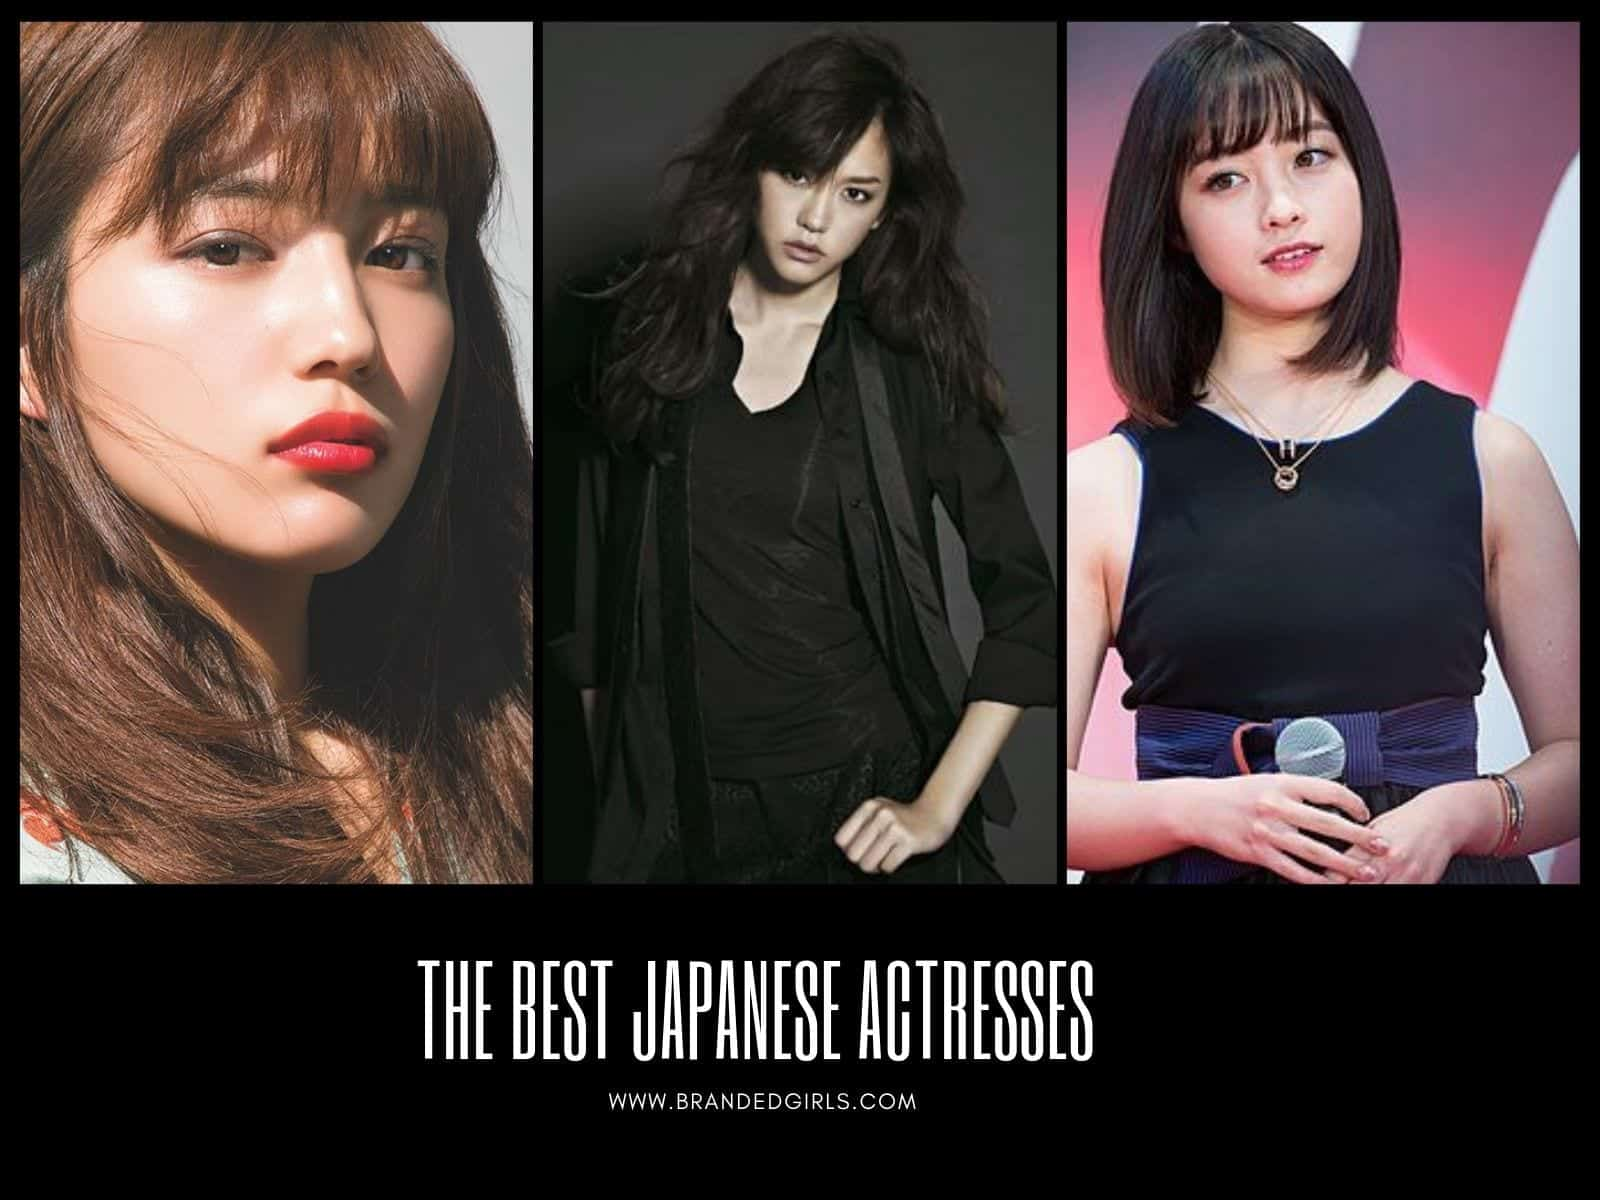 Japanese-Actress Top 20 Japanese Actresses 2019 - Most Beautiful & Talented